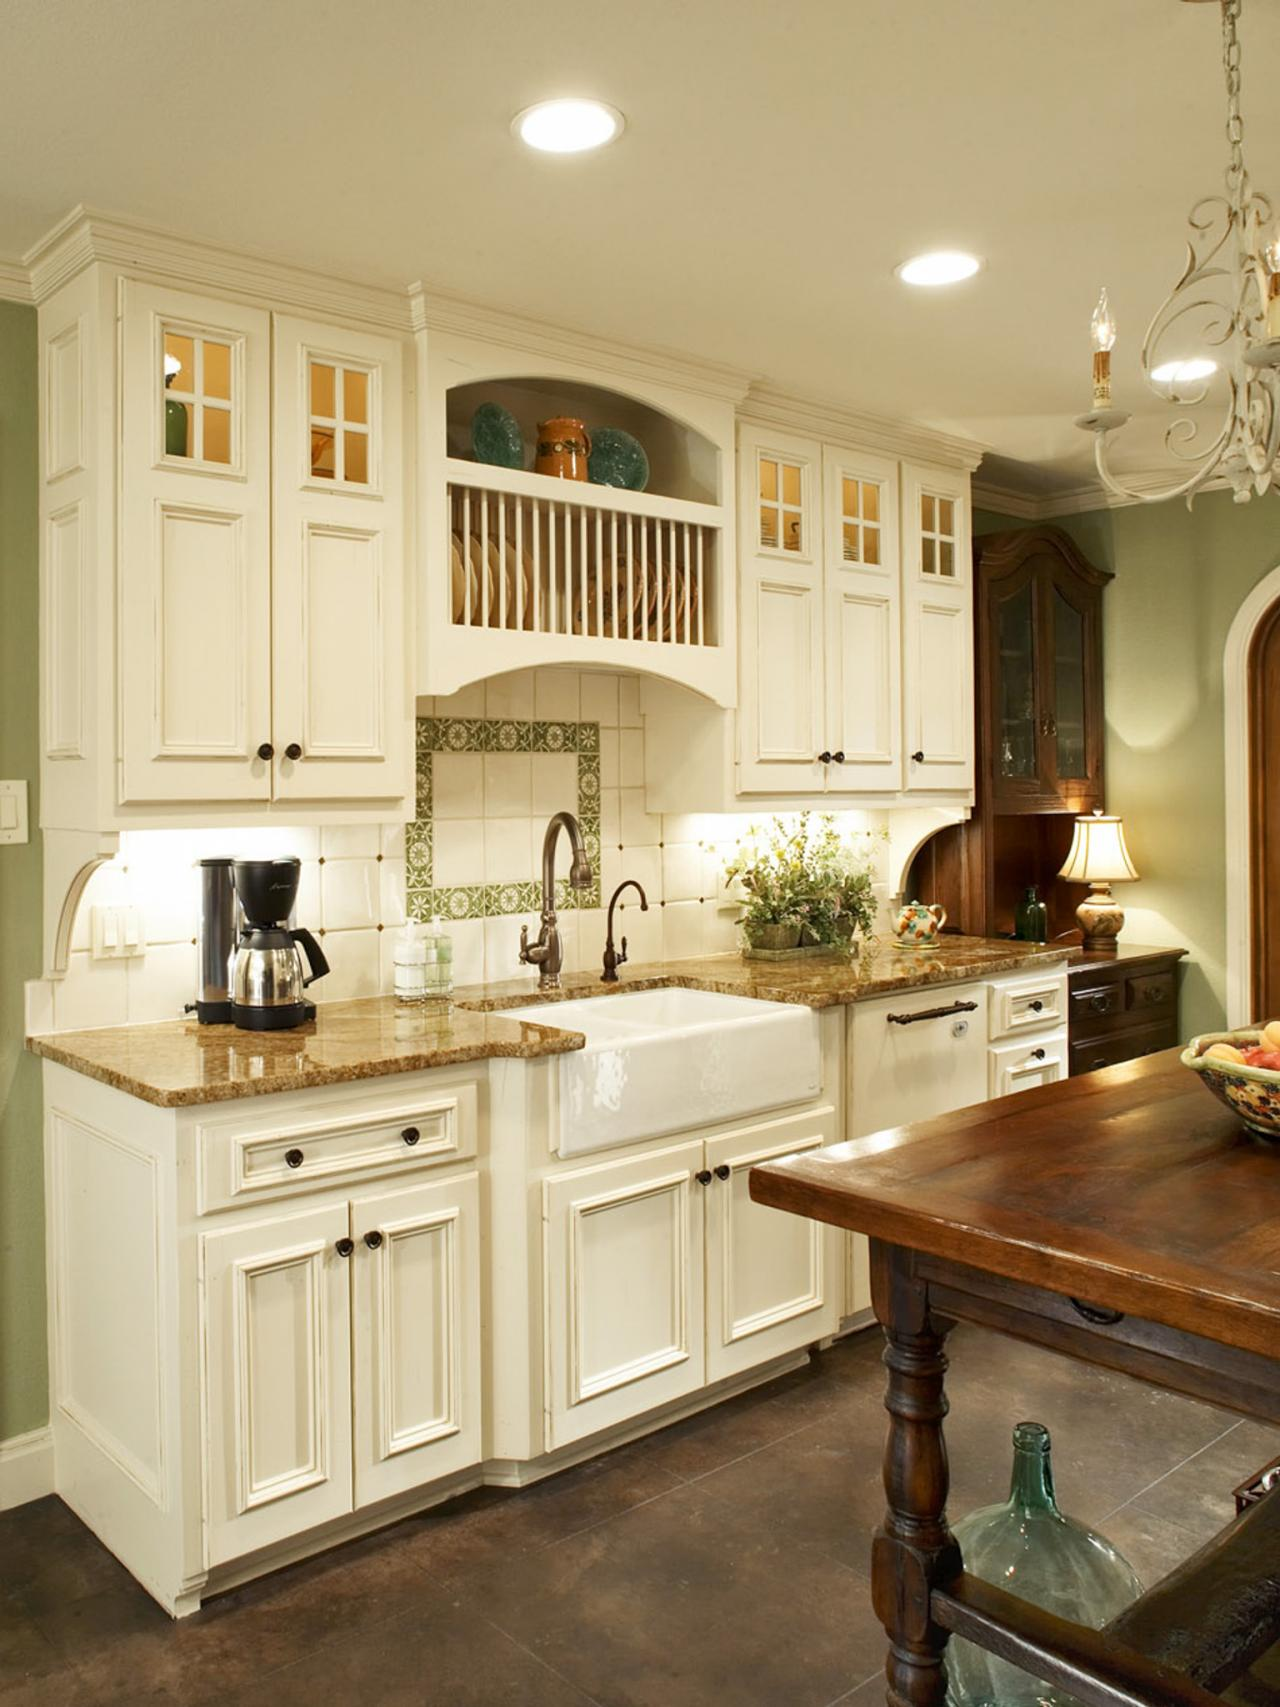 French country kitchen sinks - 15 rules for installing ... on Kitchen Sink Ideas  id=91095